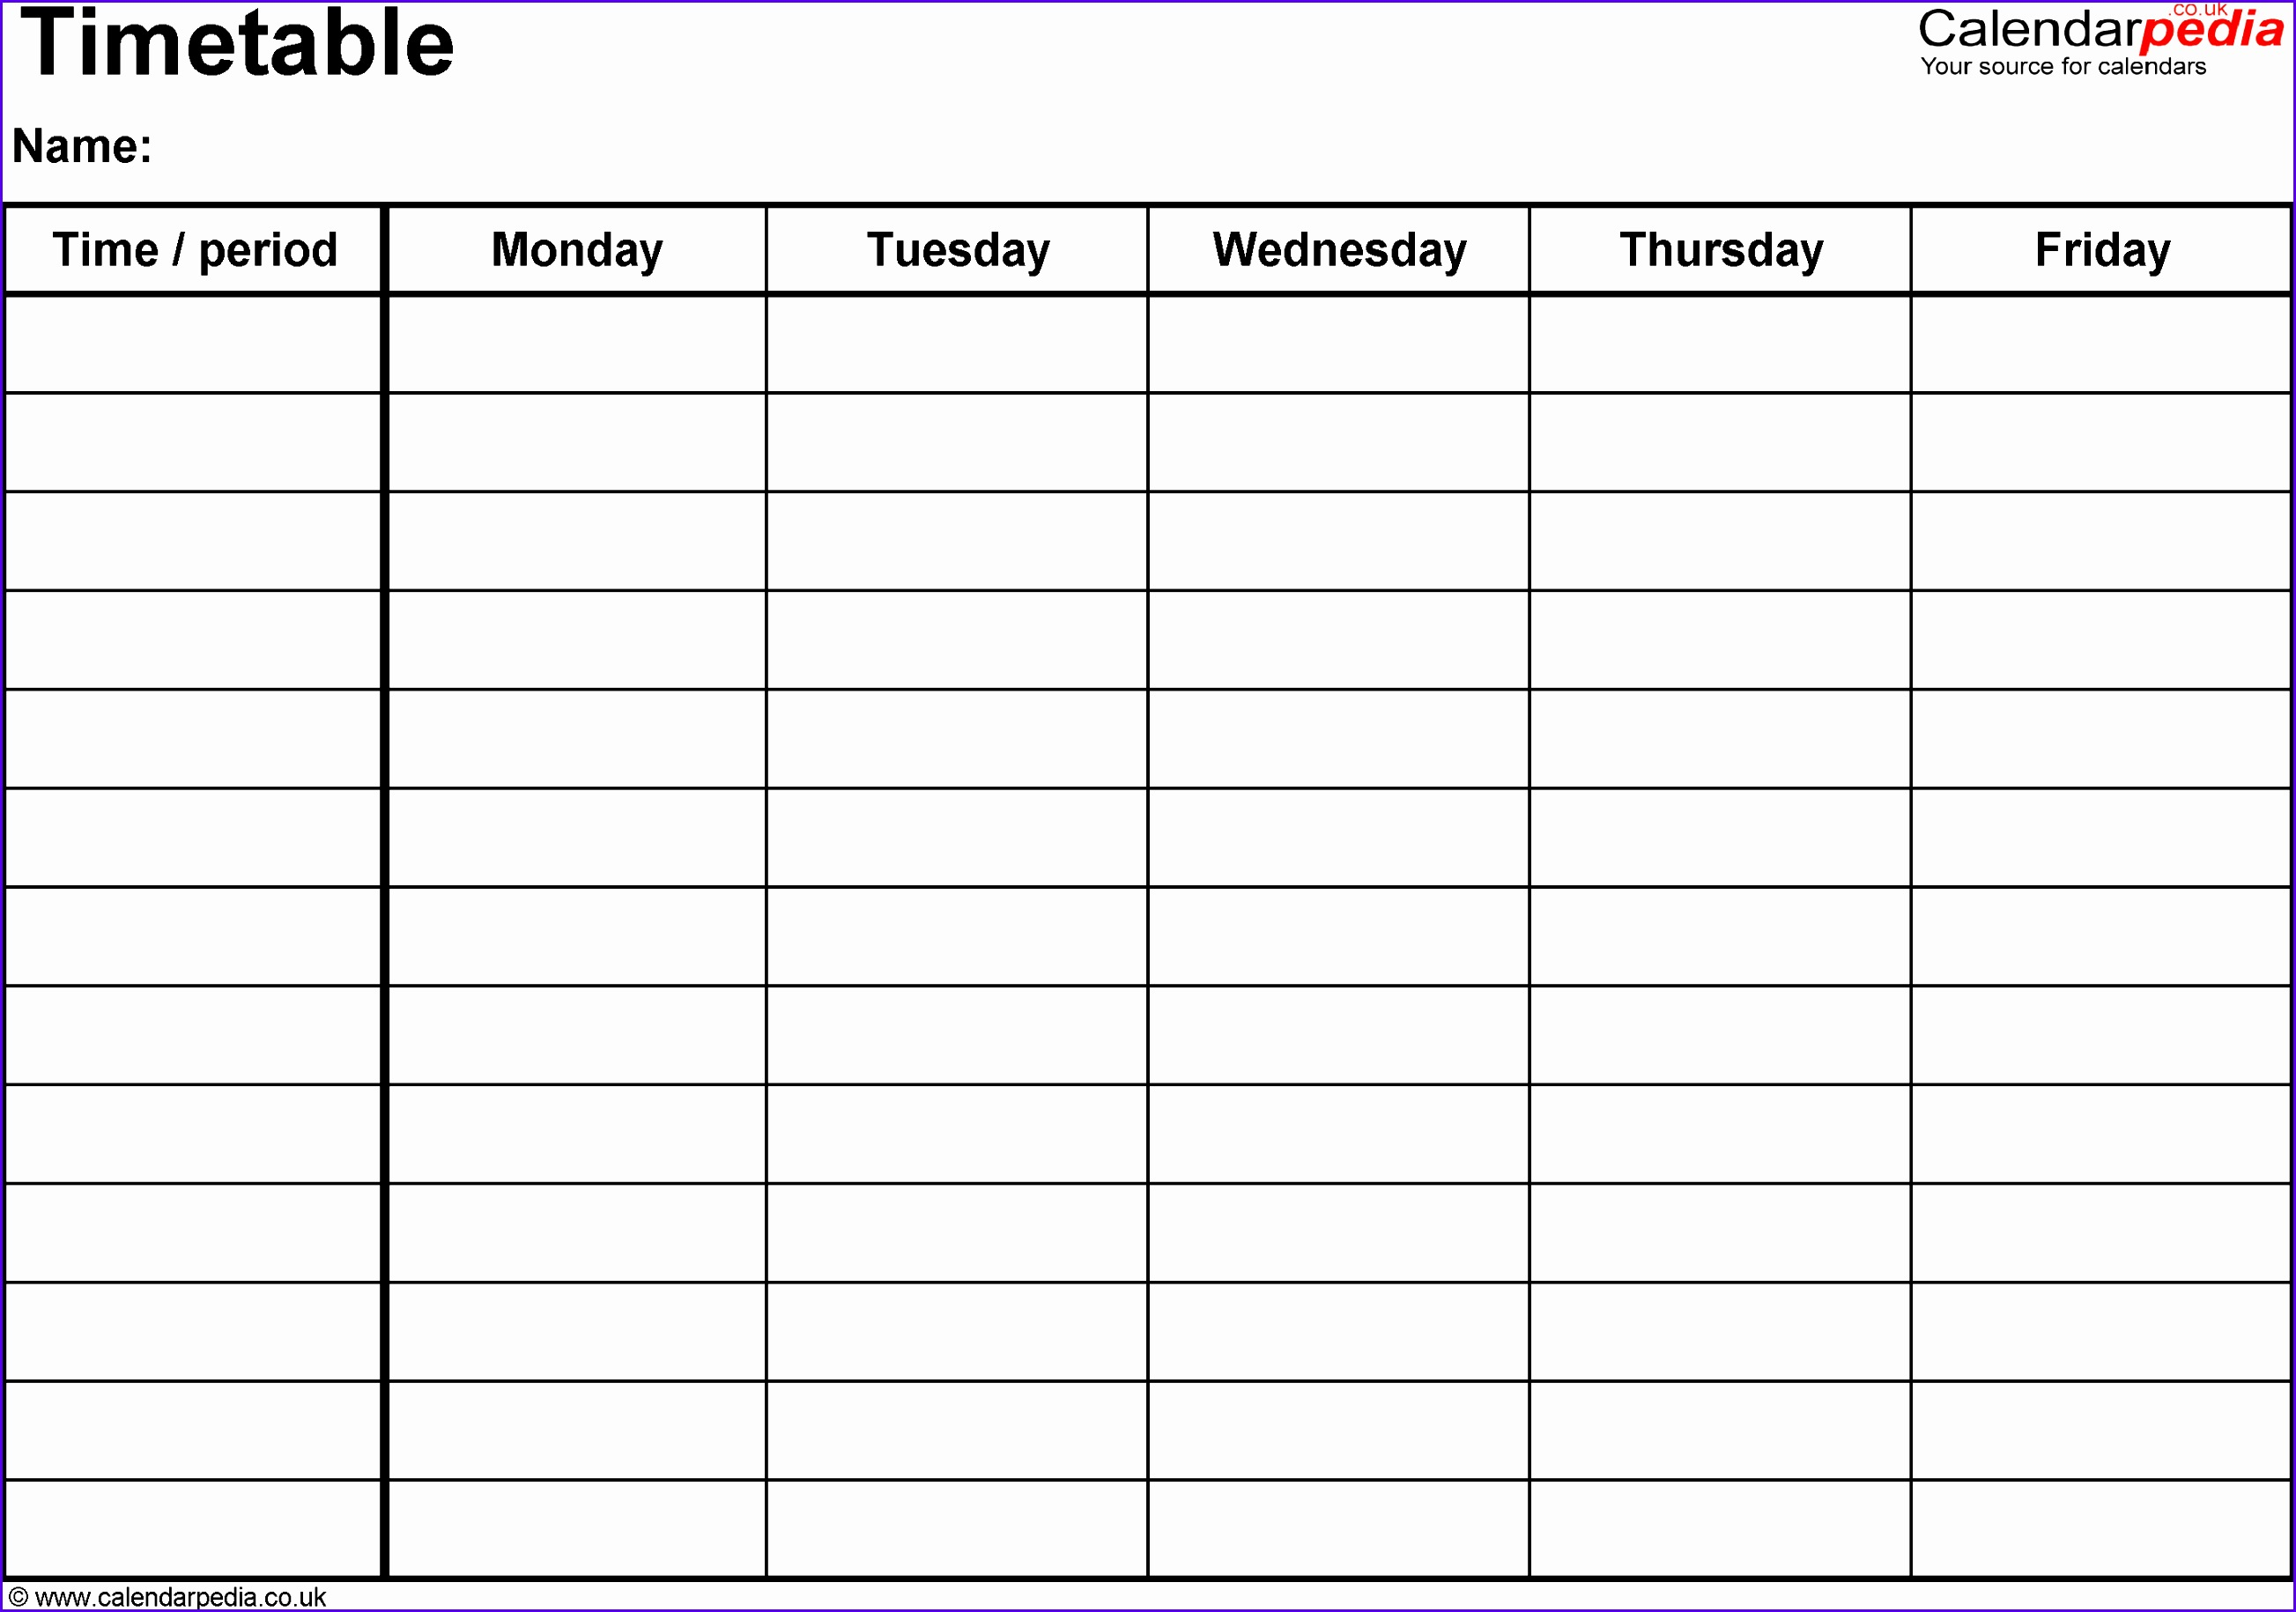 Examples Excel Template Weekly Schedule ifdvl Awesome Excel Timetable Twentyeandi 28641990